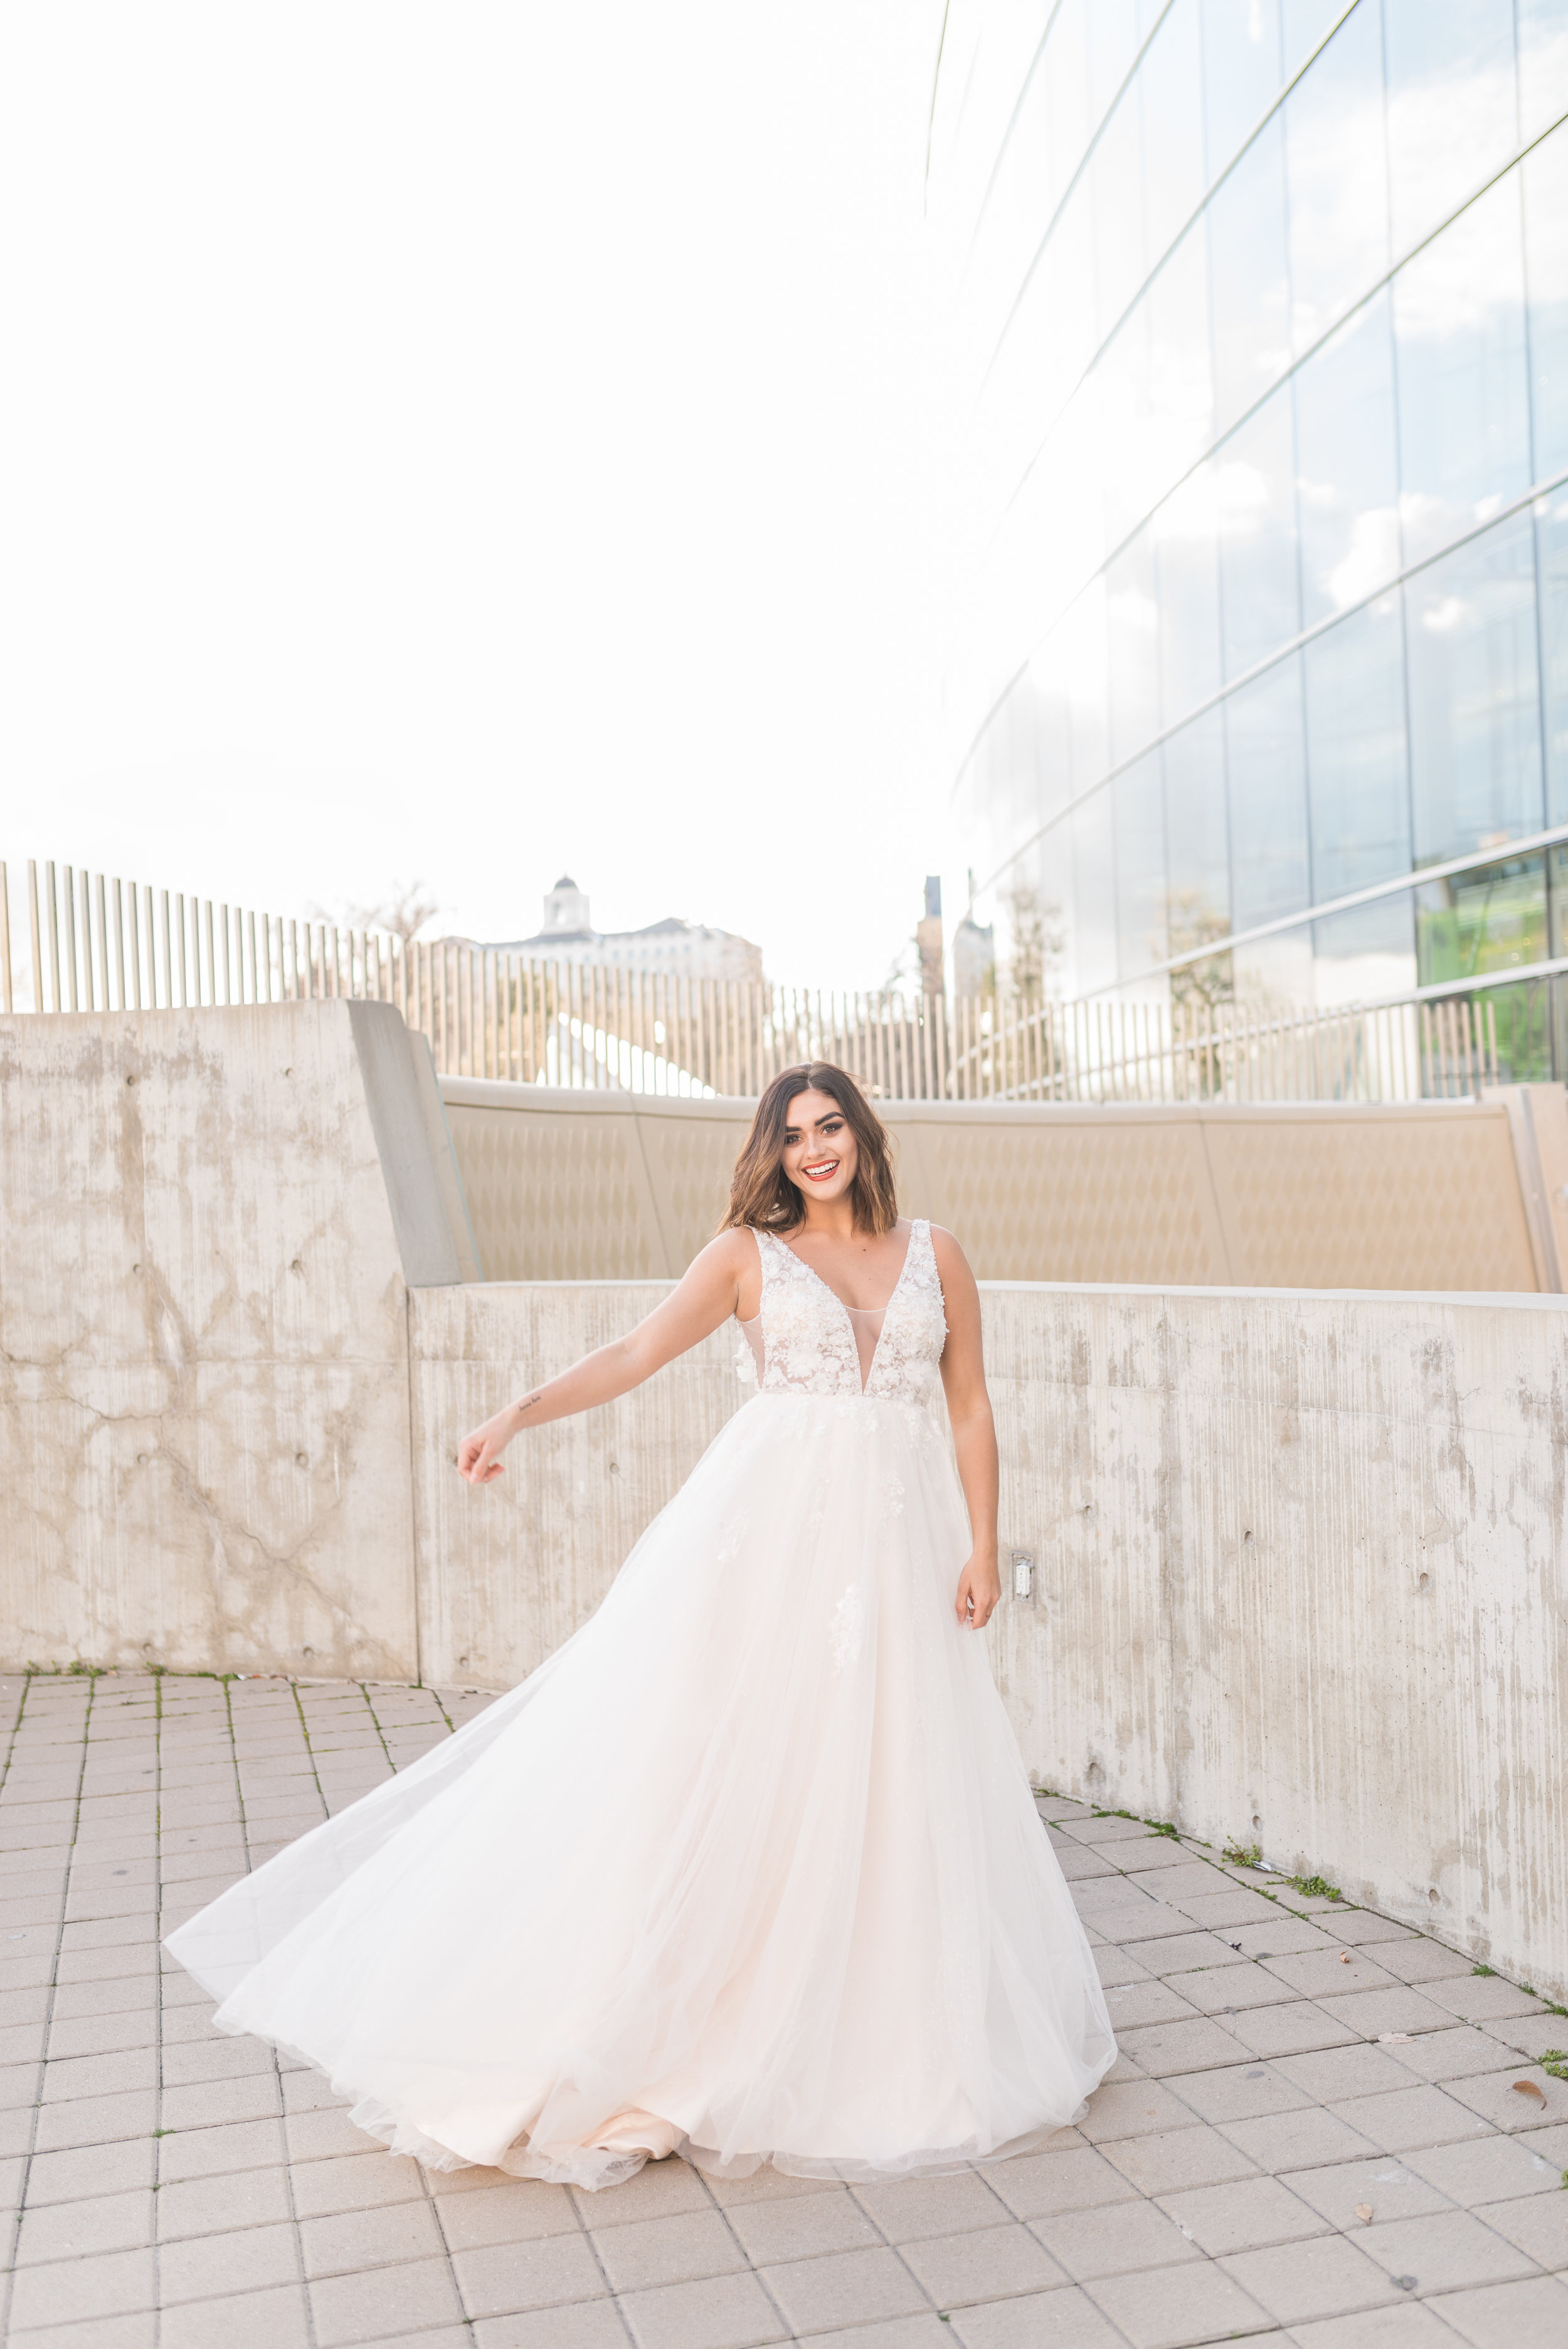 Salt Lake City Library bridals_Boda Bridal_The Potted Pansy_Stephanie Lorraine Photography-74.jpg